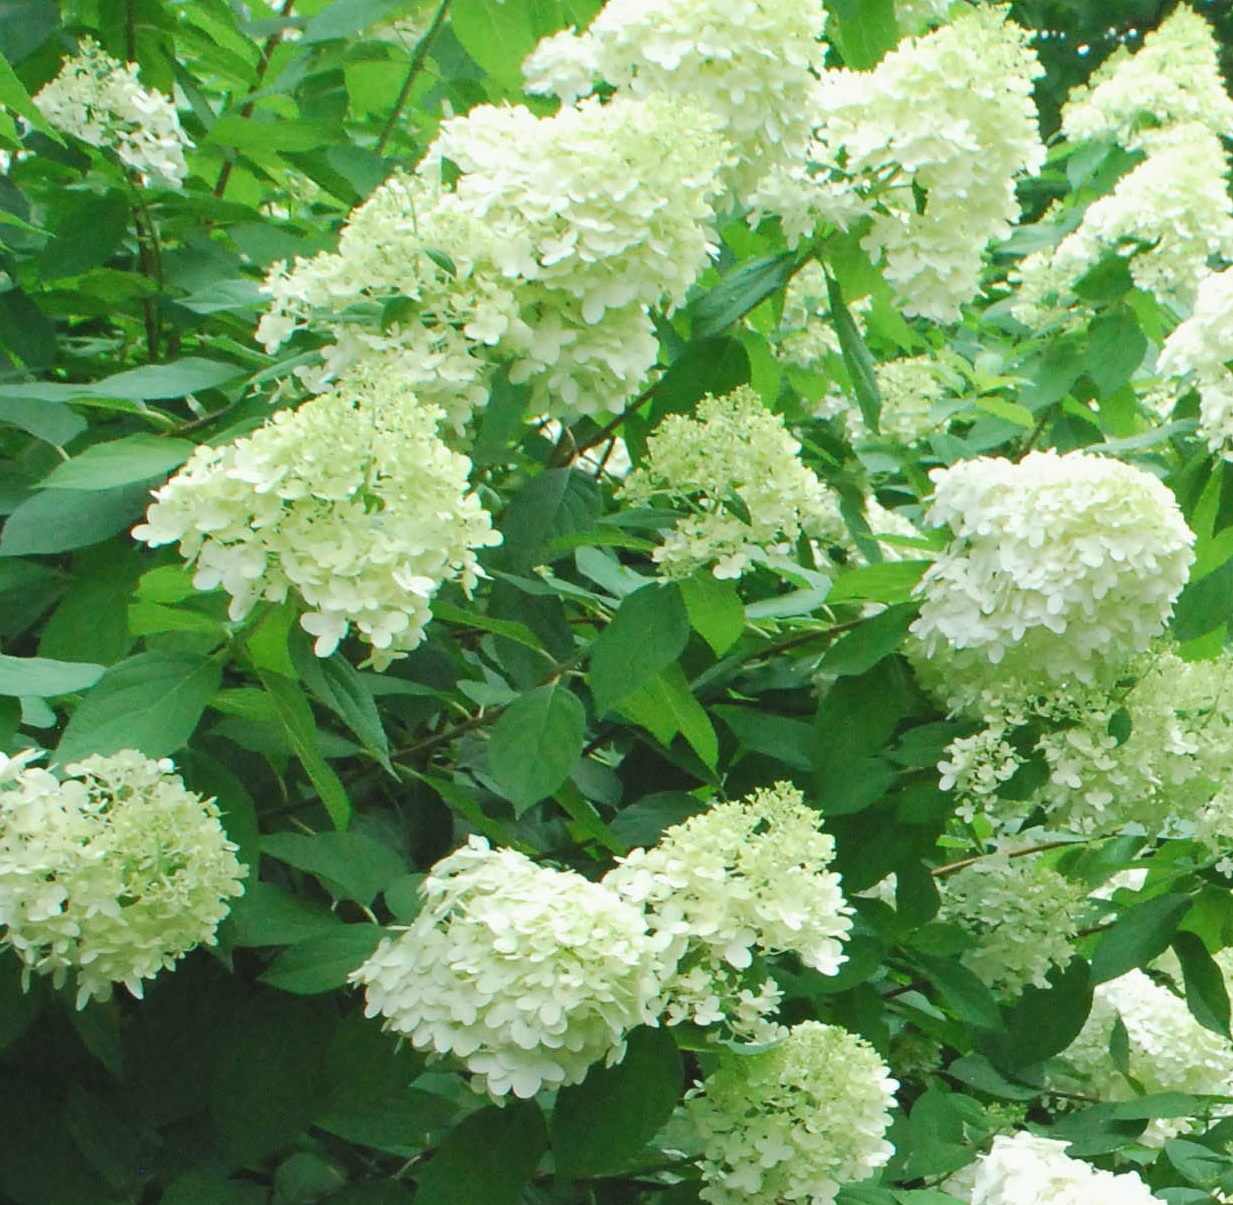 Hortensja bukietowa 'Magical Moonlight' - Hydrangea paniculata 'Magical Moonlight'